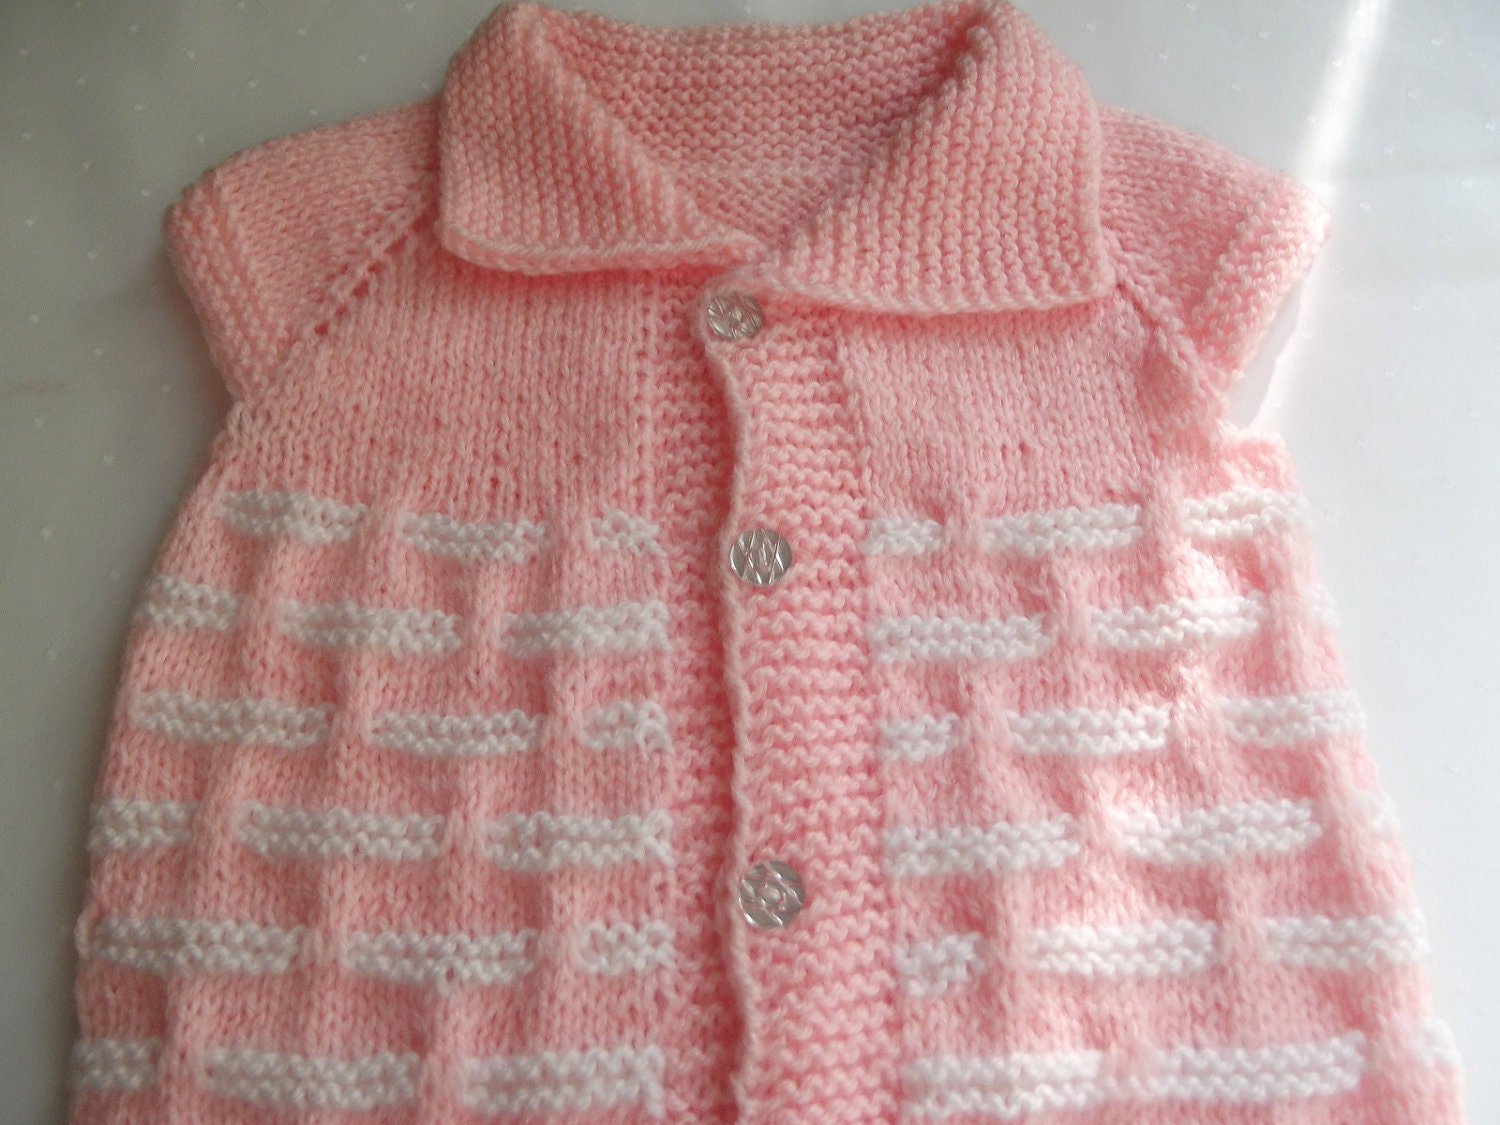 Handmade Knitting Pattern...Knitting Baby Vest... by Vestberet